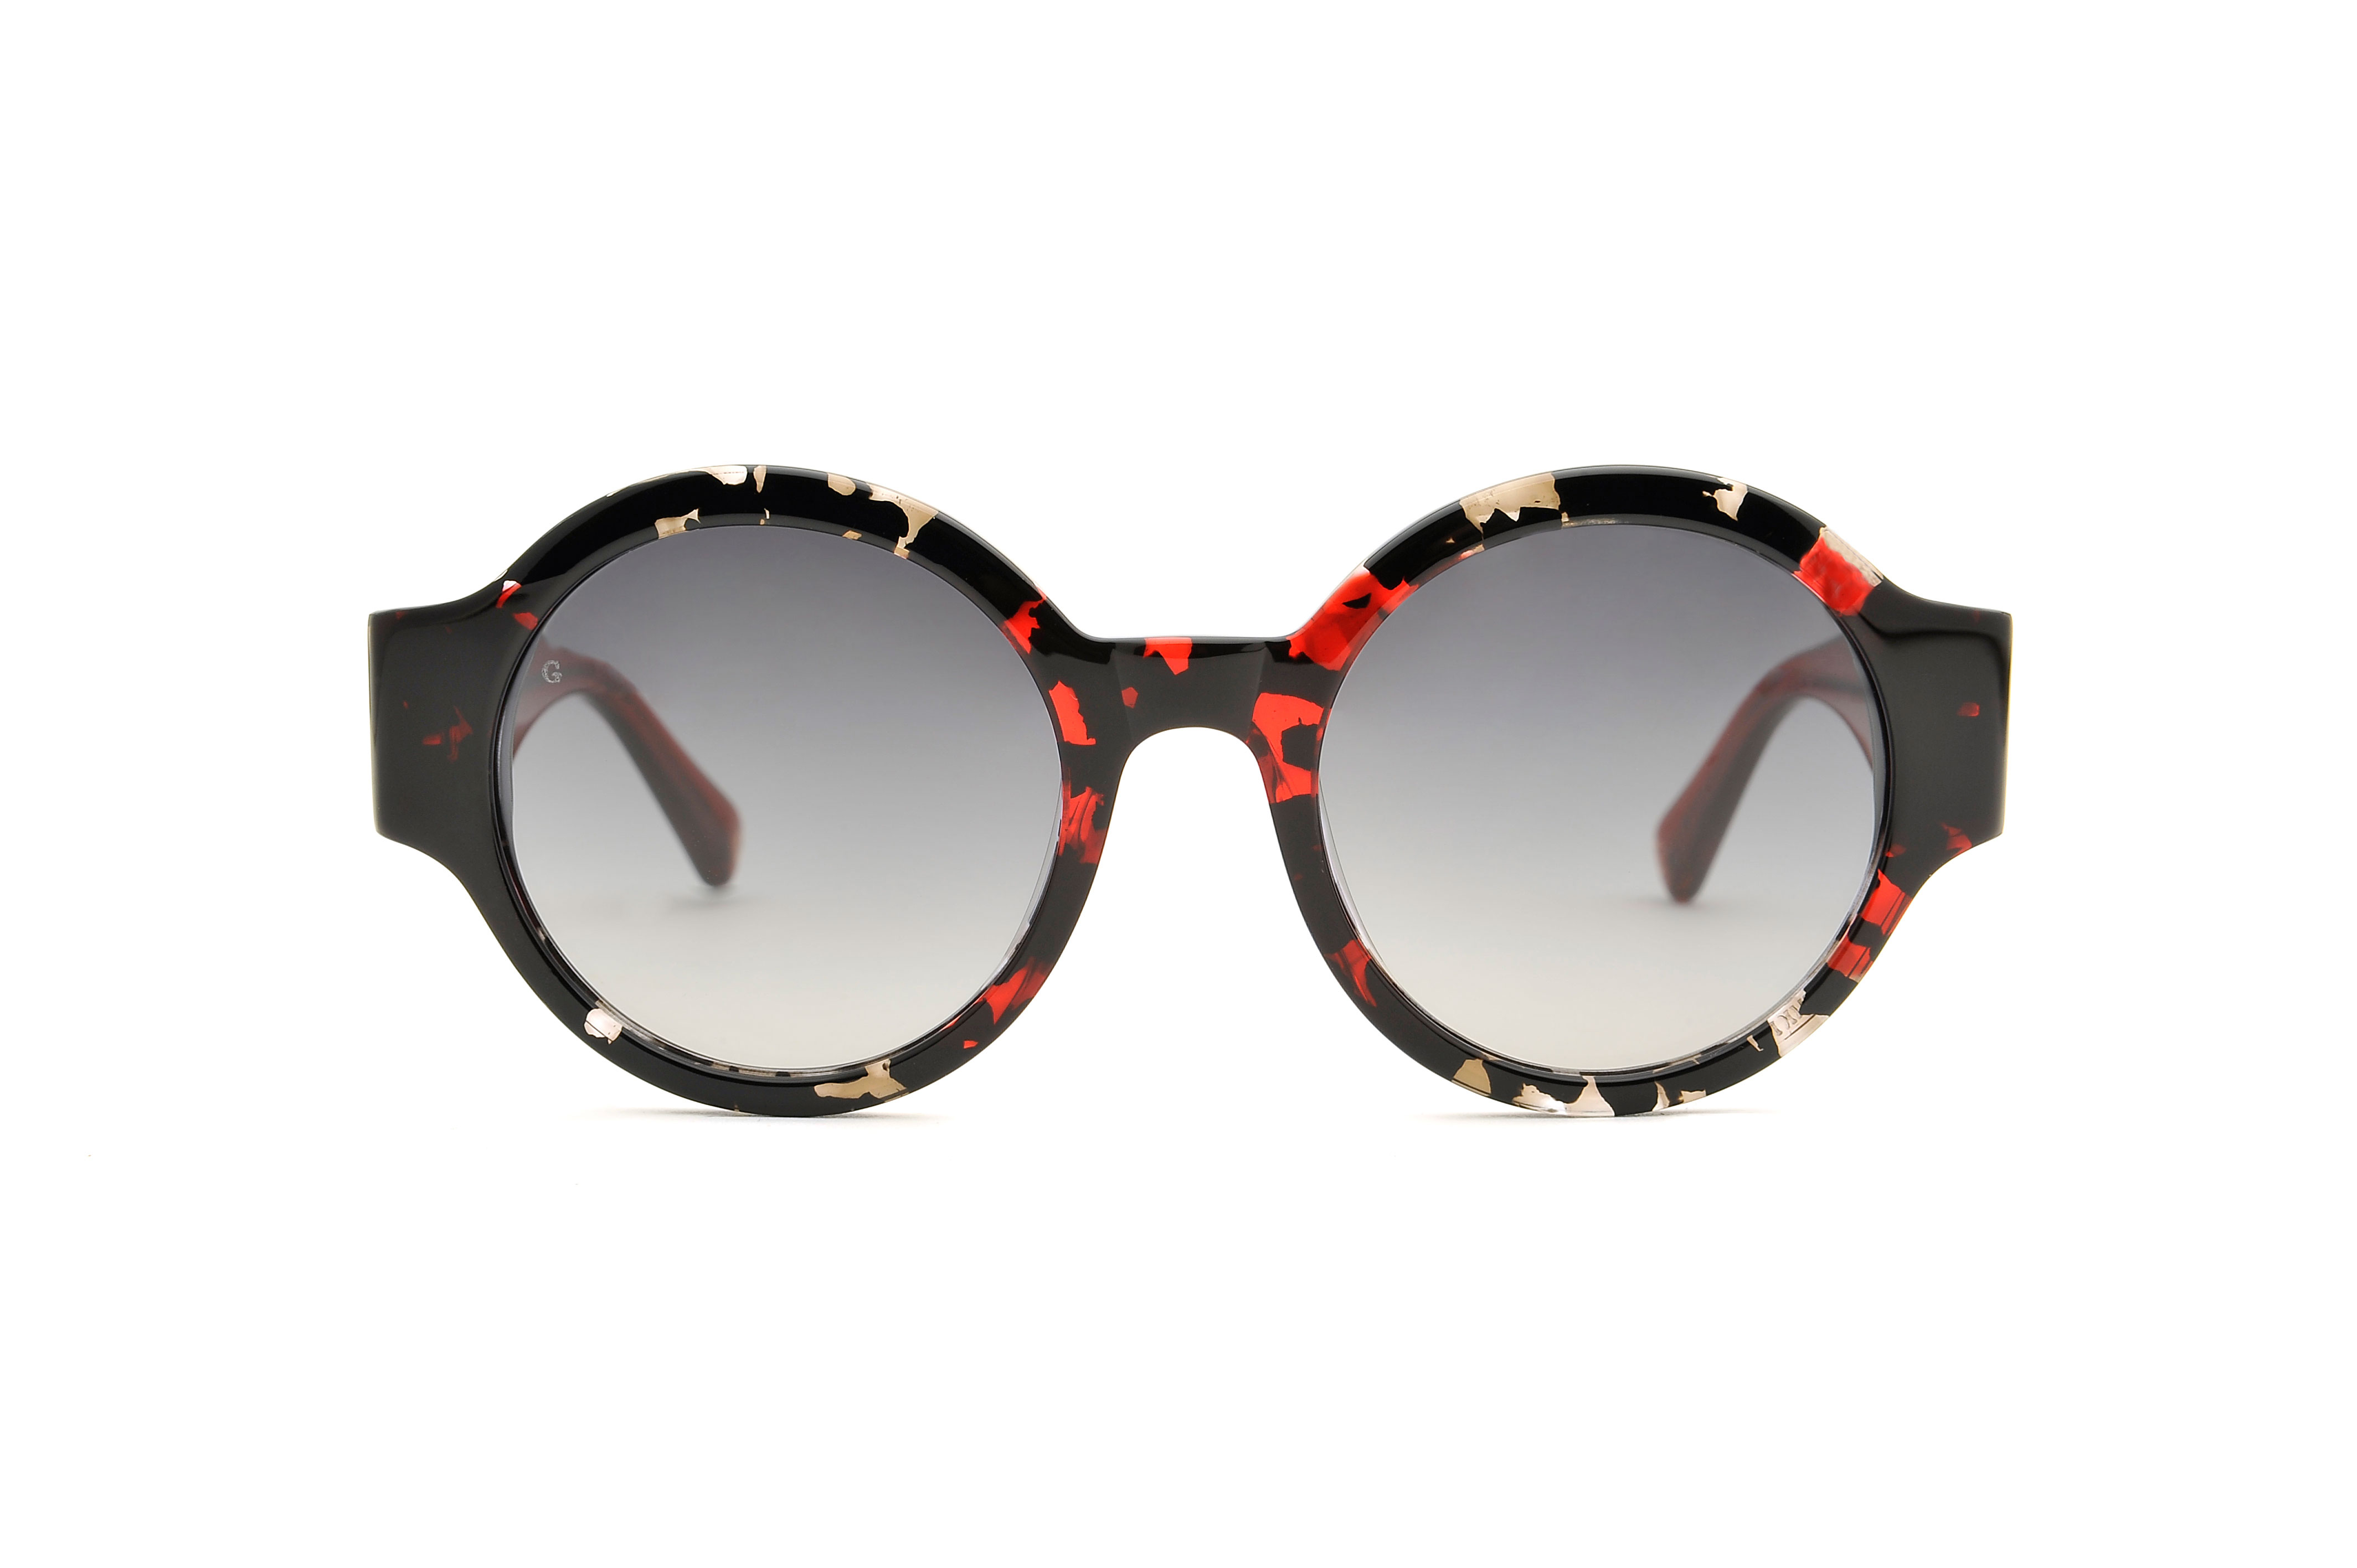 Heart acetate rounded red sunglasses by GIGI Studios